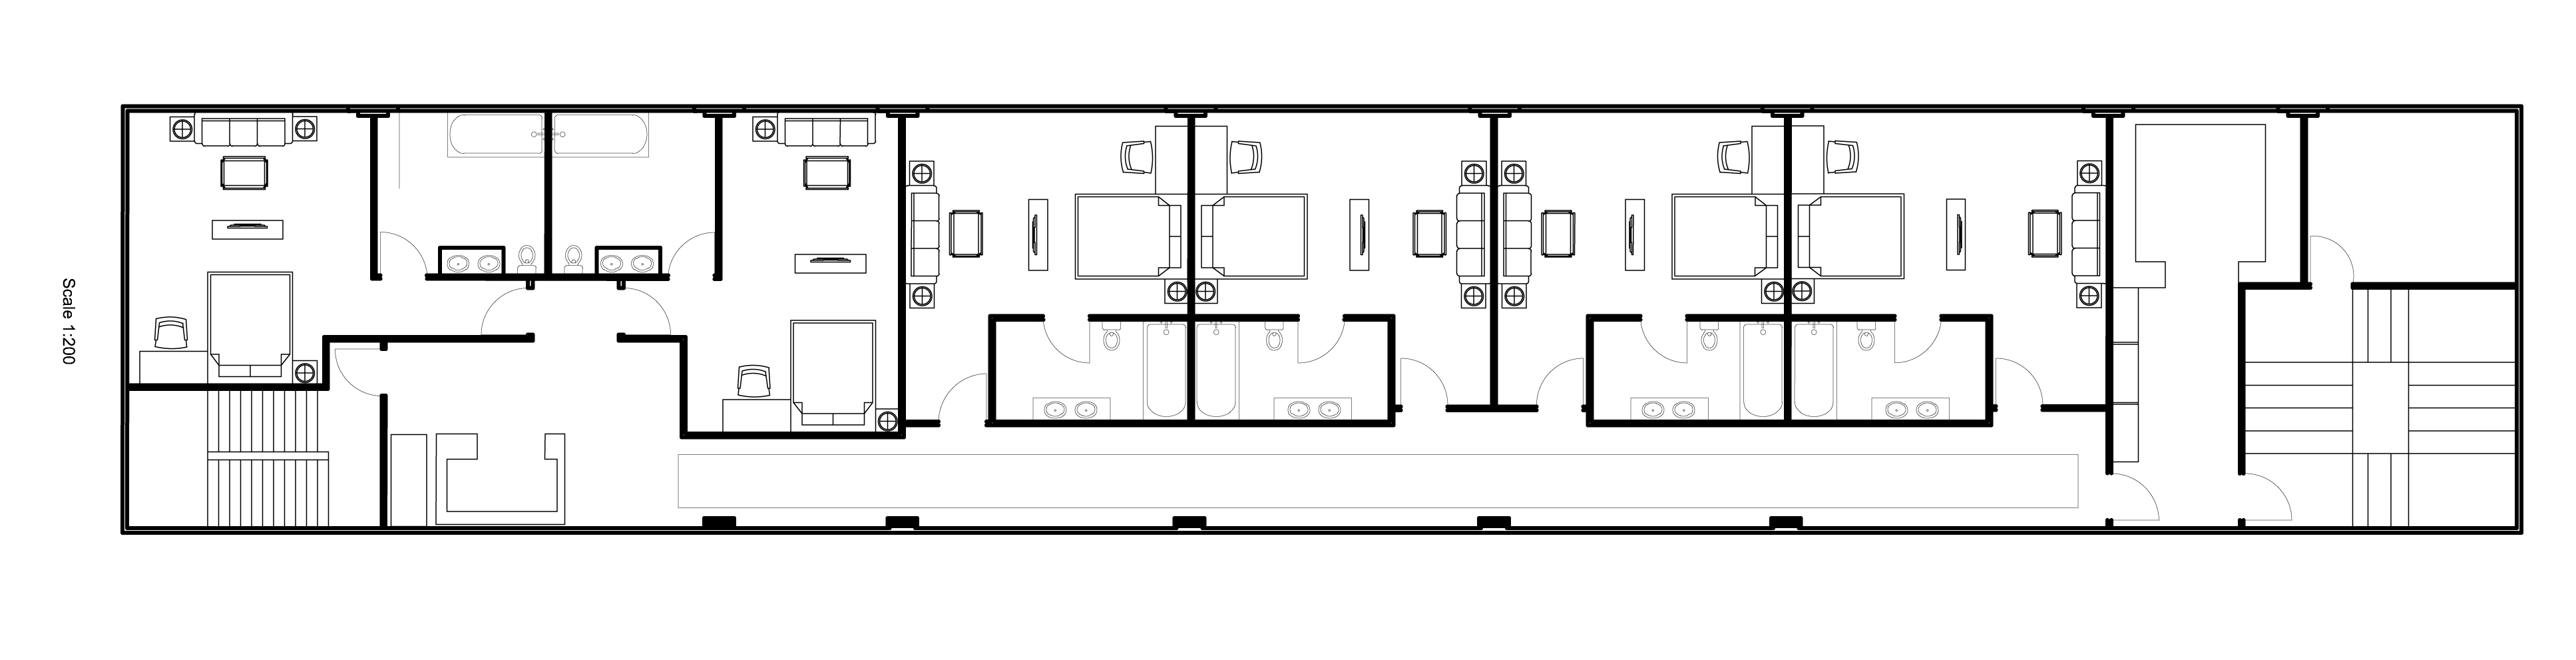 Hotel plan hotel plan examples mini hotel floor plan floor for Plan my room layout